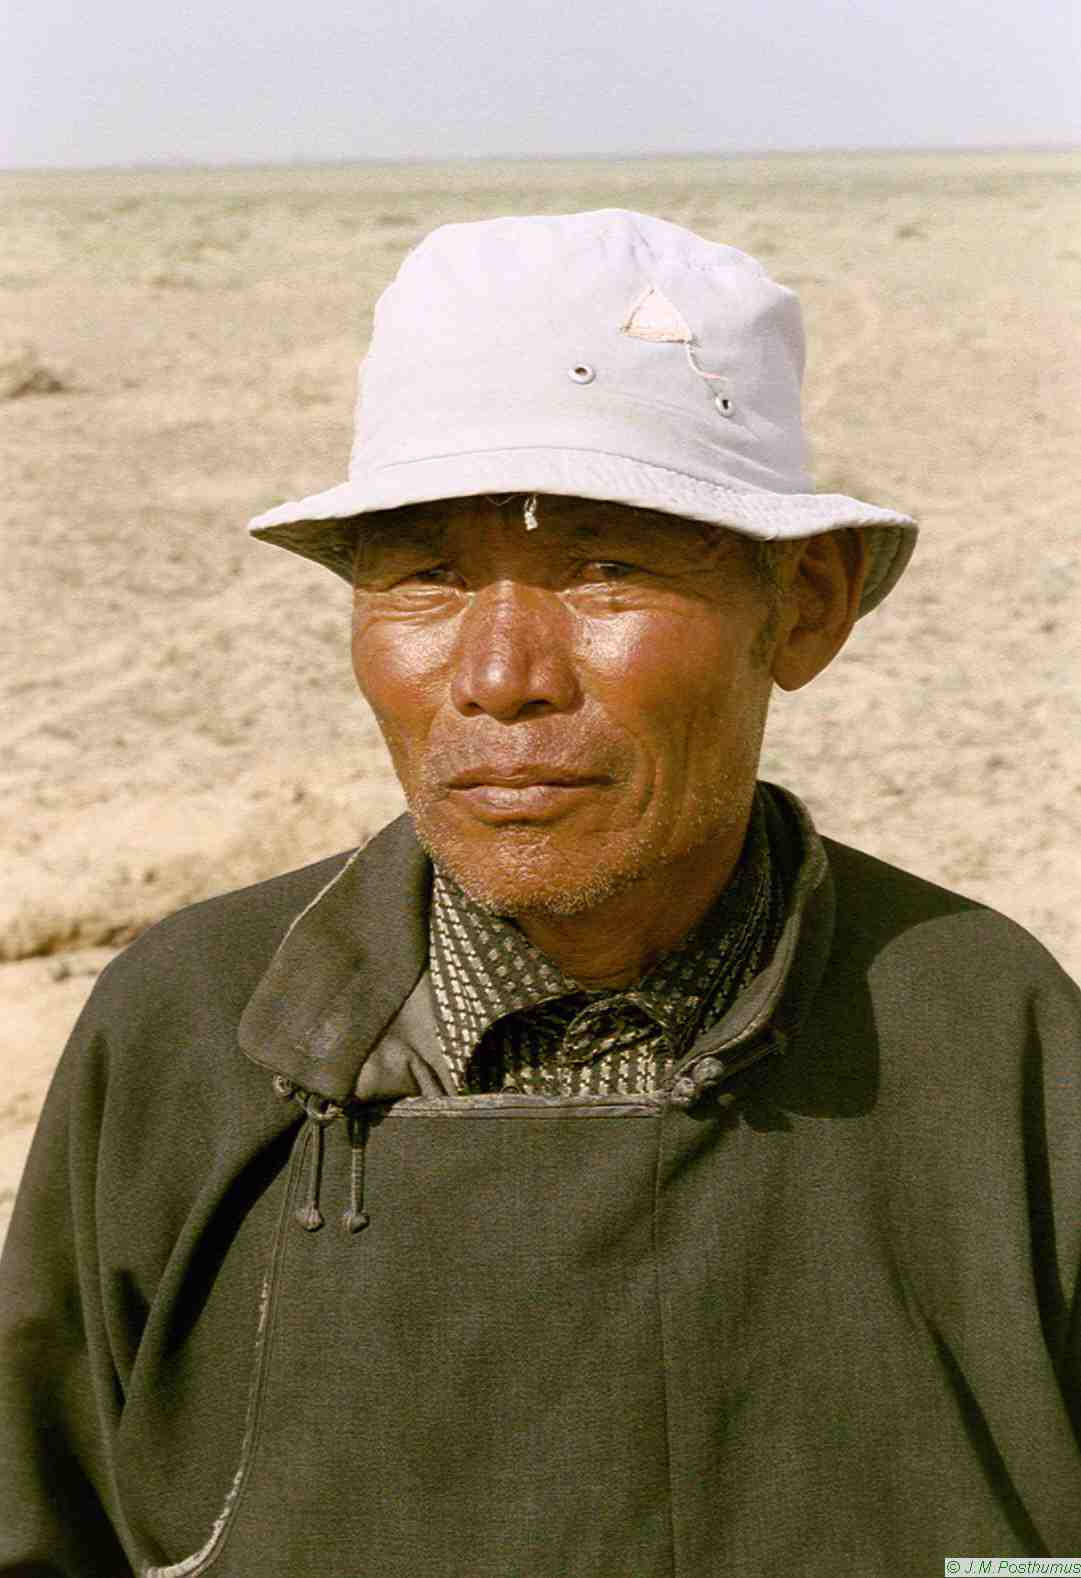 Mongolian: http://home.planet.nl/~posth144/Posthumus/Photogallery/Mongolia/M_pages/mongolian2.htm